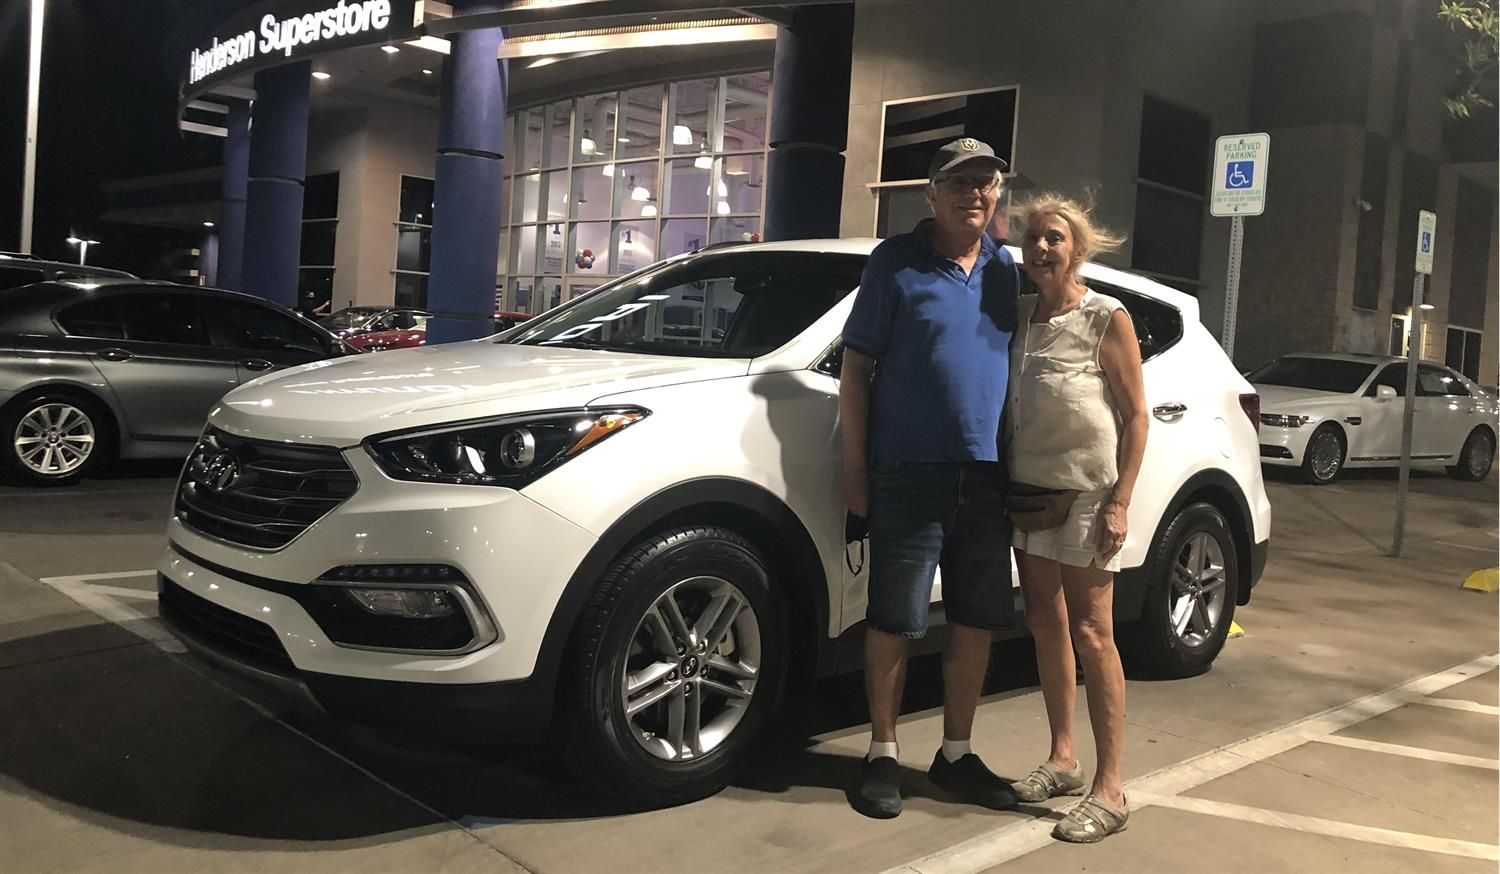 Cindy And John We Hope You Enjoy Your New 2017 Hyundai Santa Fe Congratulations And Best Wishes New Hyundai Hyundai Santa Fe Congratulations And Best Wishes